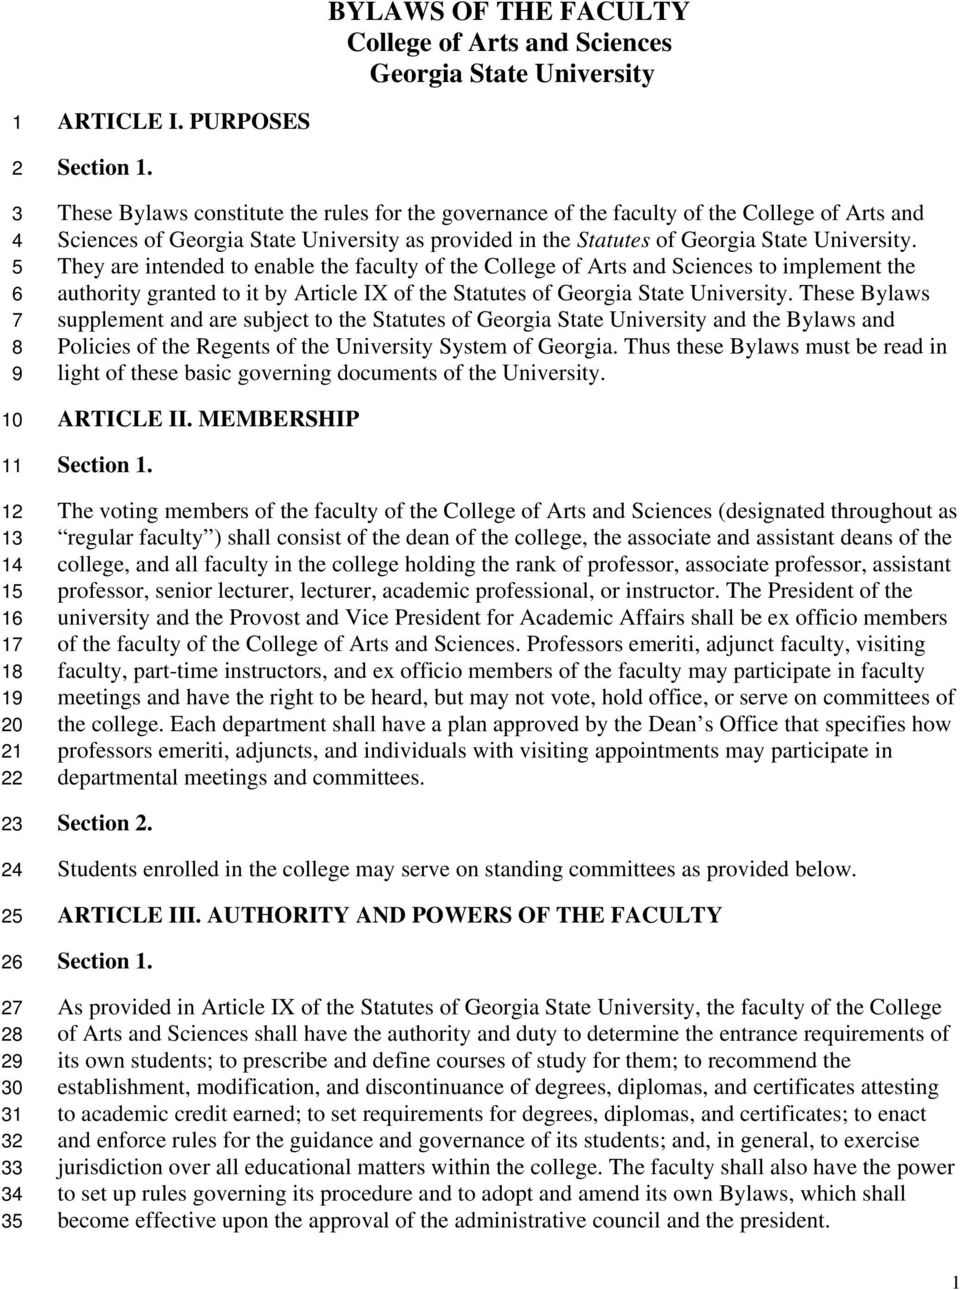 These Bylaws constitute the rules for the governance of the faculty of the College of Arts and Sciences of Georgia State University as provided in the Statutes of Georgia State University.